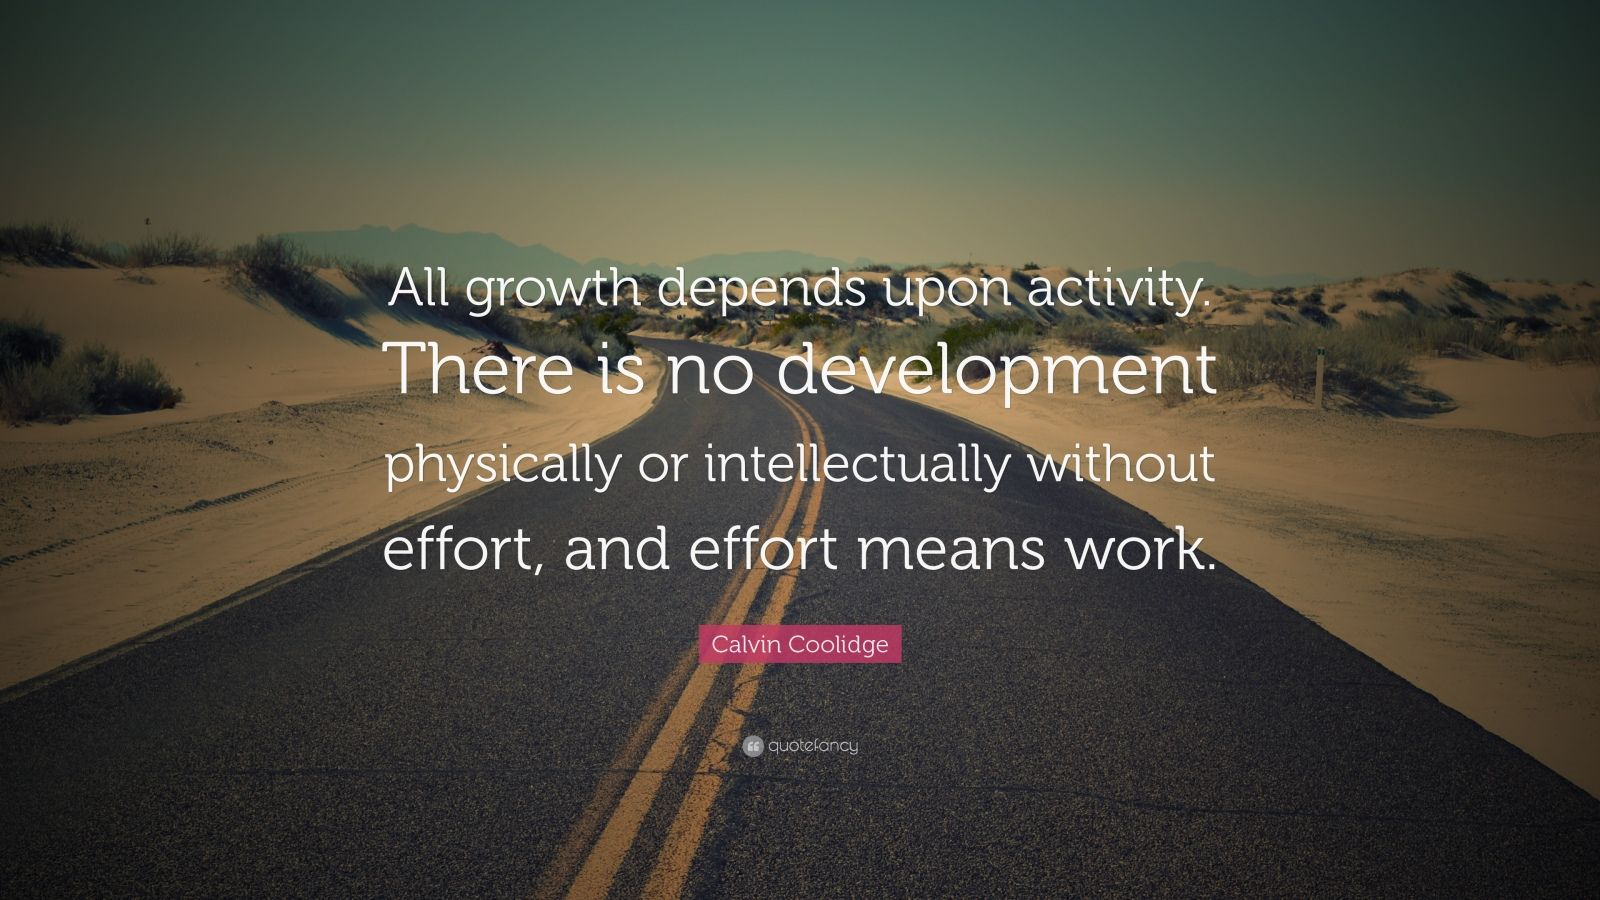 """Calvin Coolidge Quote: """"All growth depends upon activity. There is no development physically or intellectually without effort, and effort means work."""""""